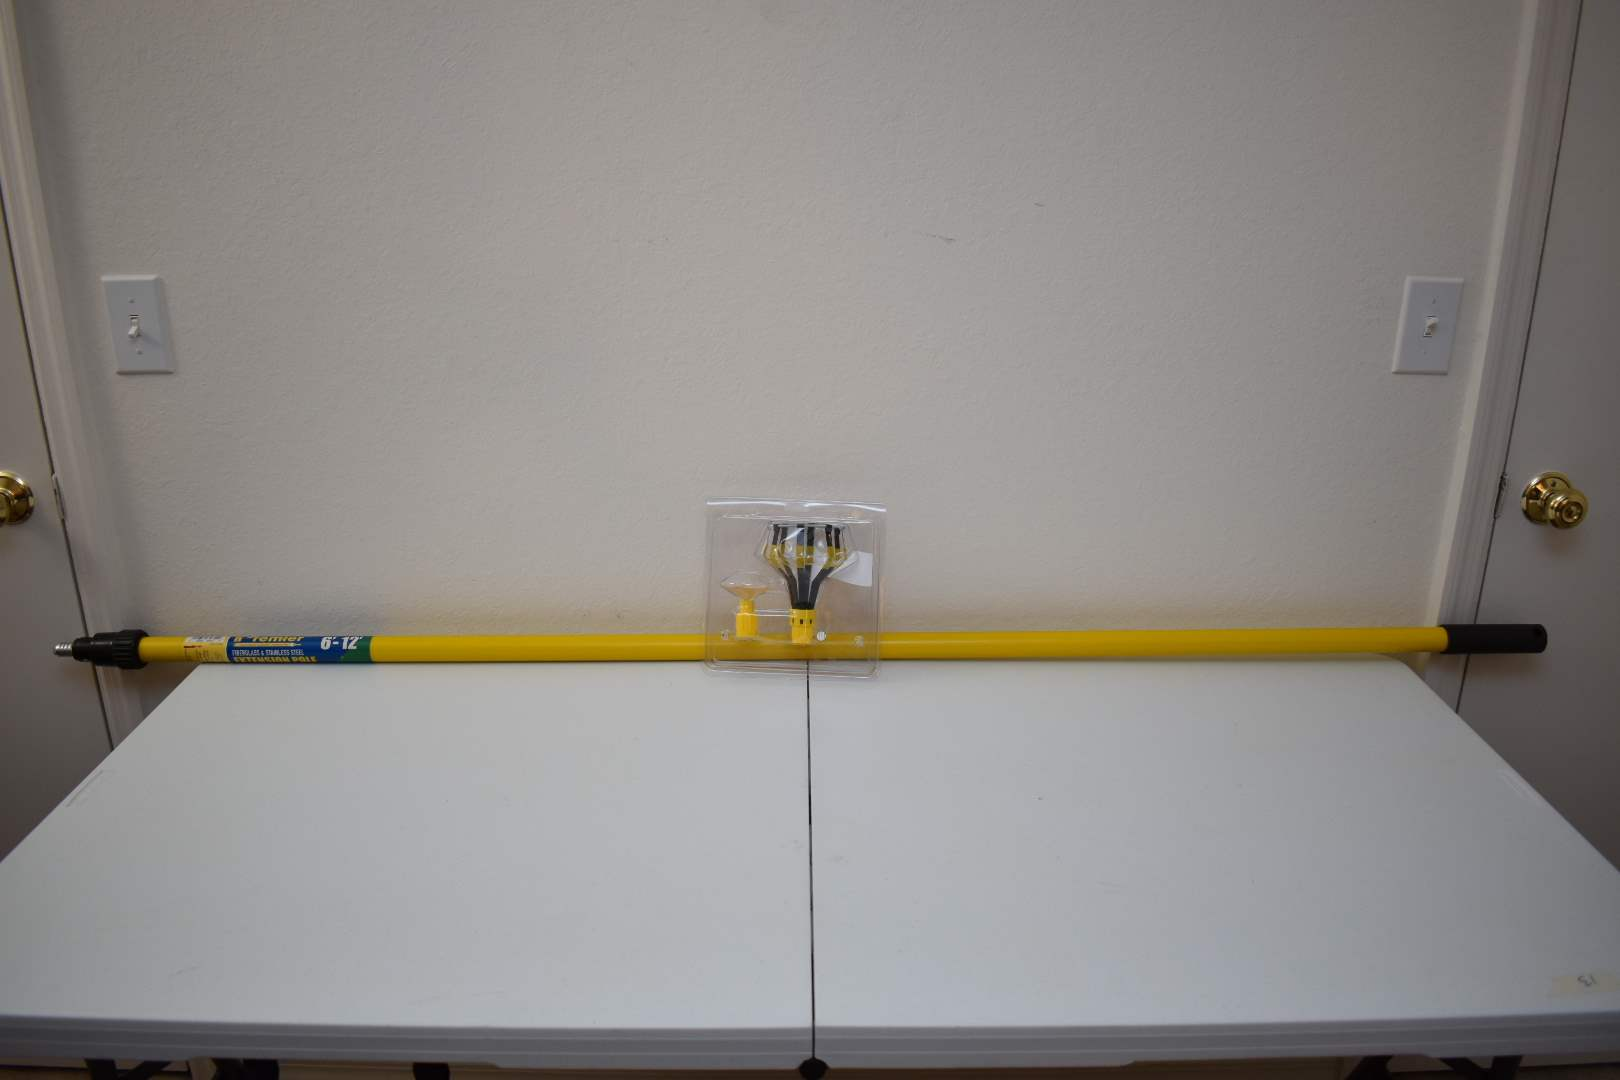 Lightbulb Changer with Pole